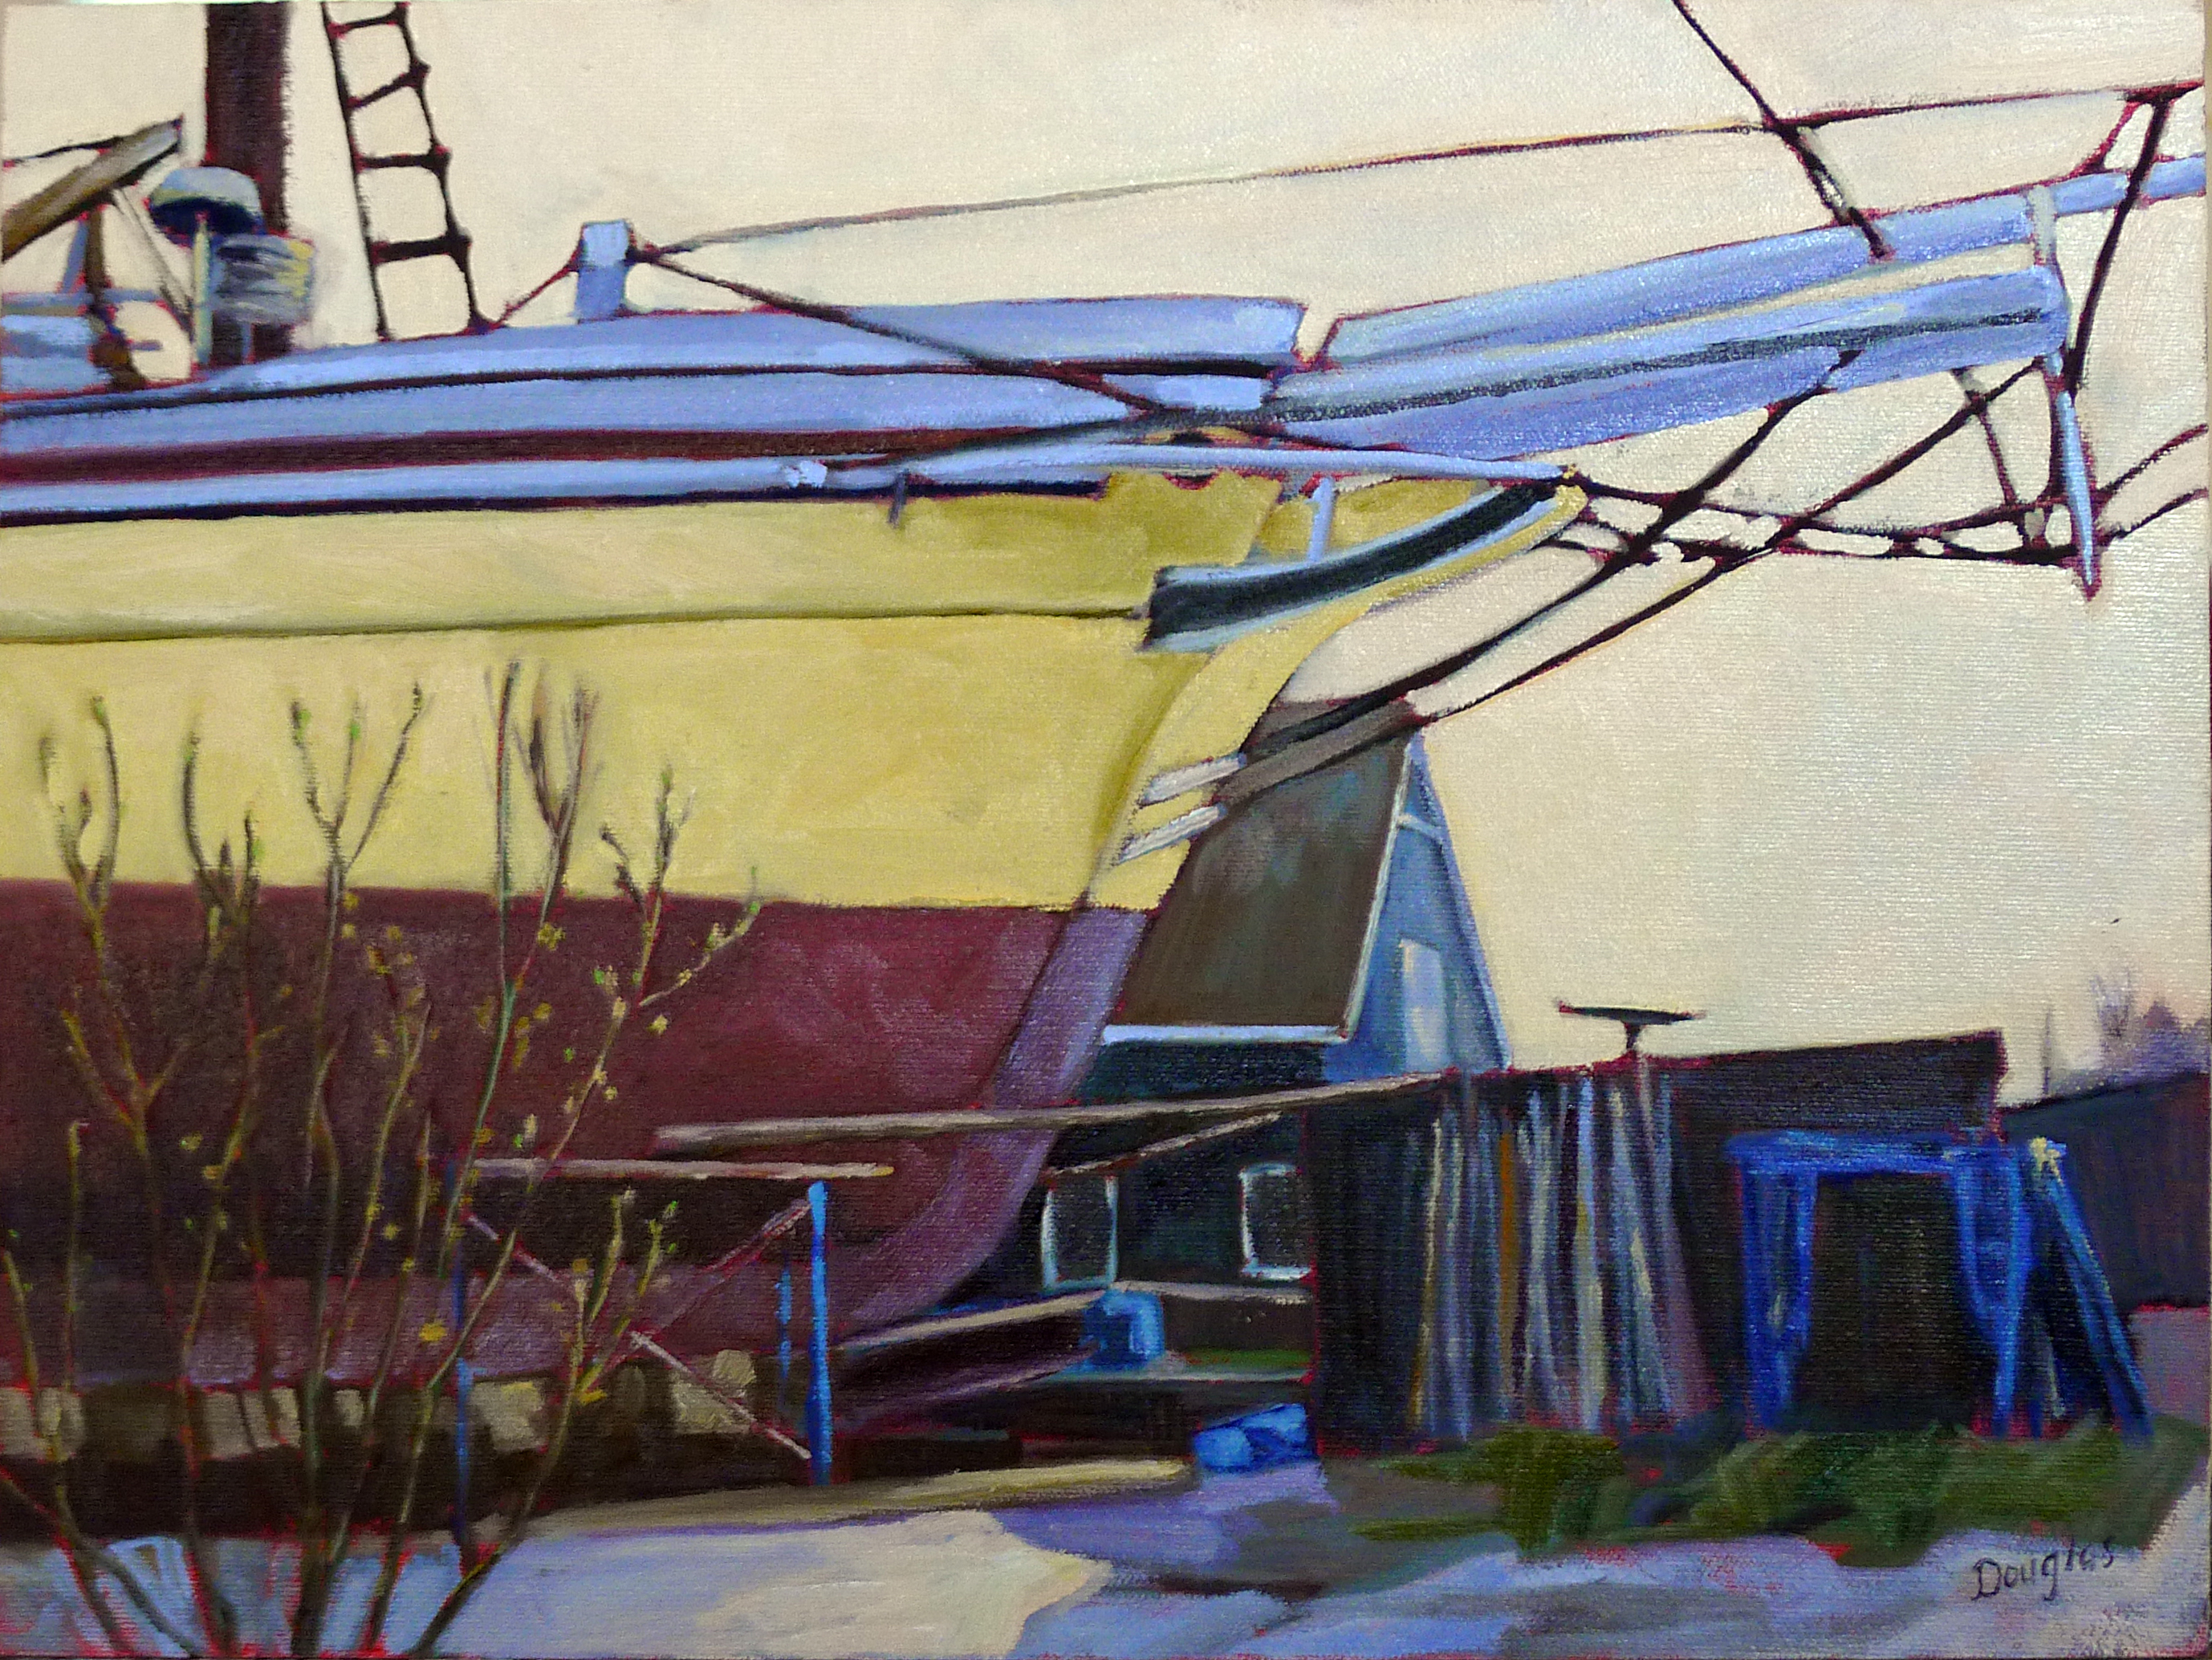 """Big Boned,"" schooner Heritage in drydock, plein air, 12X16, oil on canvasboard."